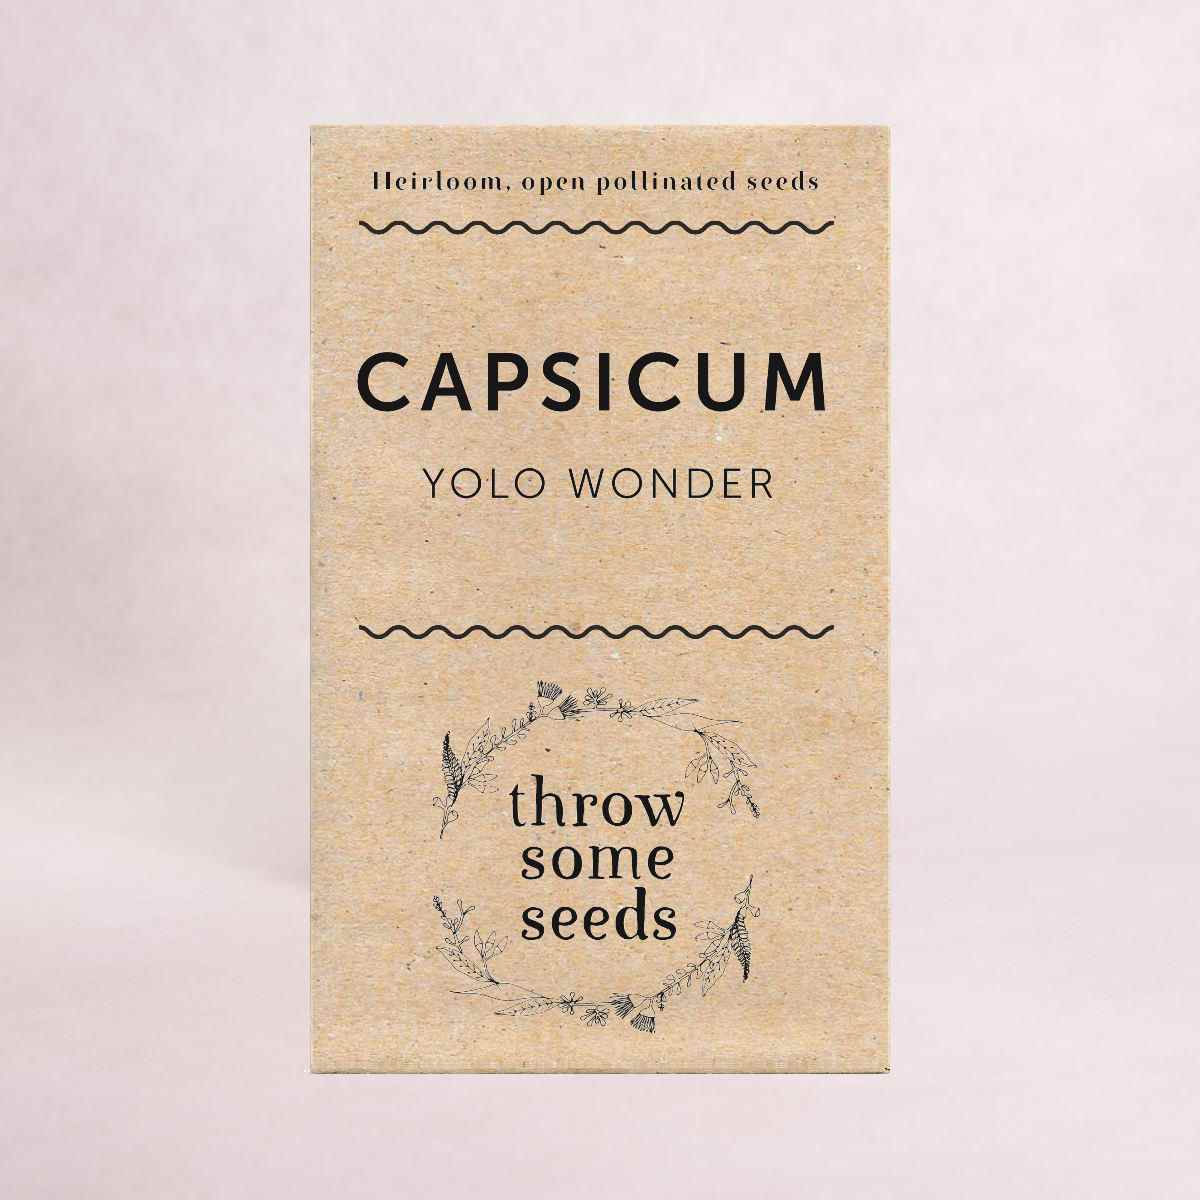 Capsicum (Yolo Wonder) Seeds - Seeds - Throw Some Seeds - Australian gardening gifts and eco products online!